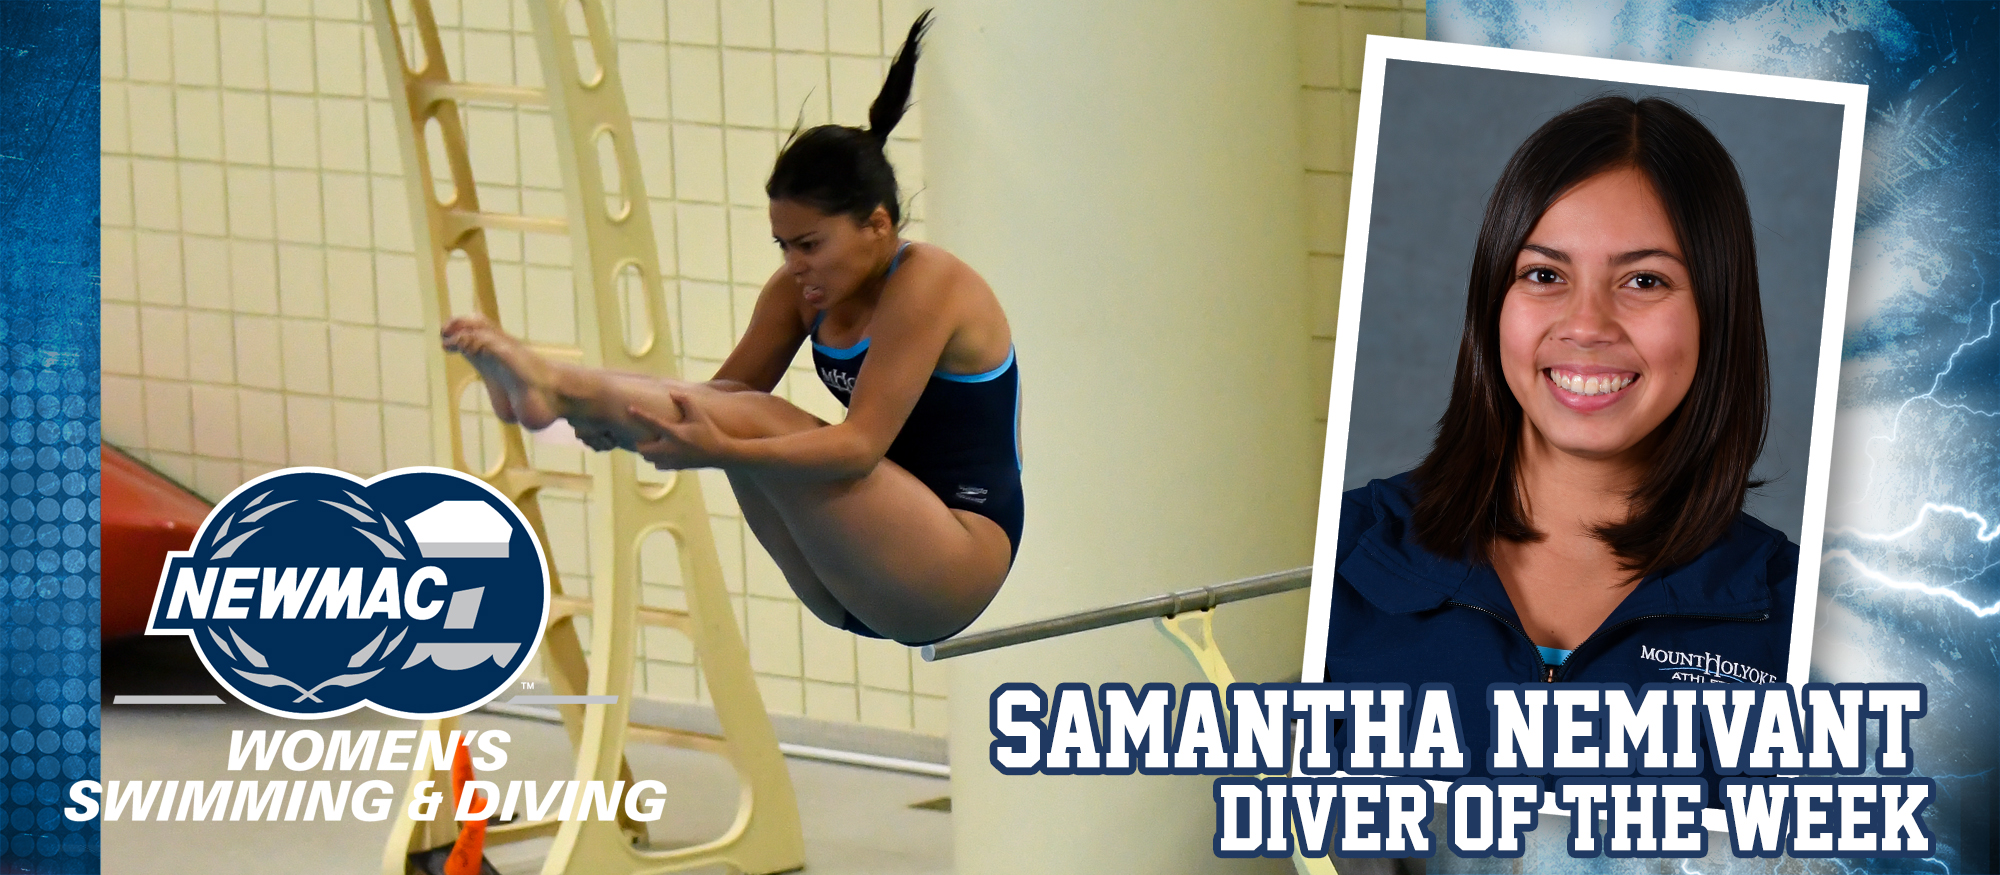 Images of Samantha Nemivant, who was named the NEWMAC Diver of the Week for January 22, 2019